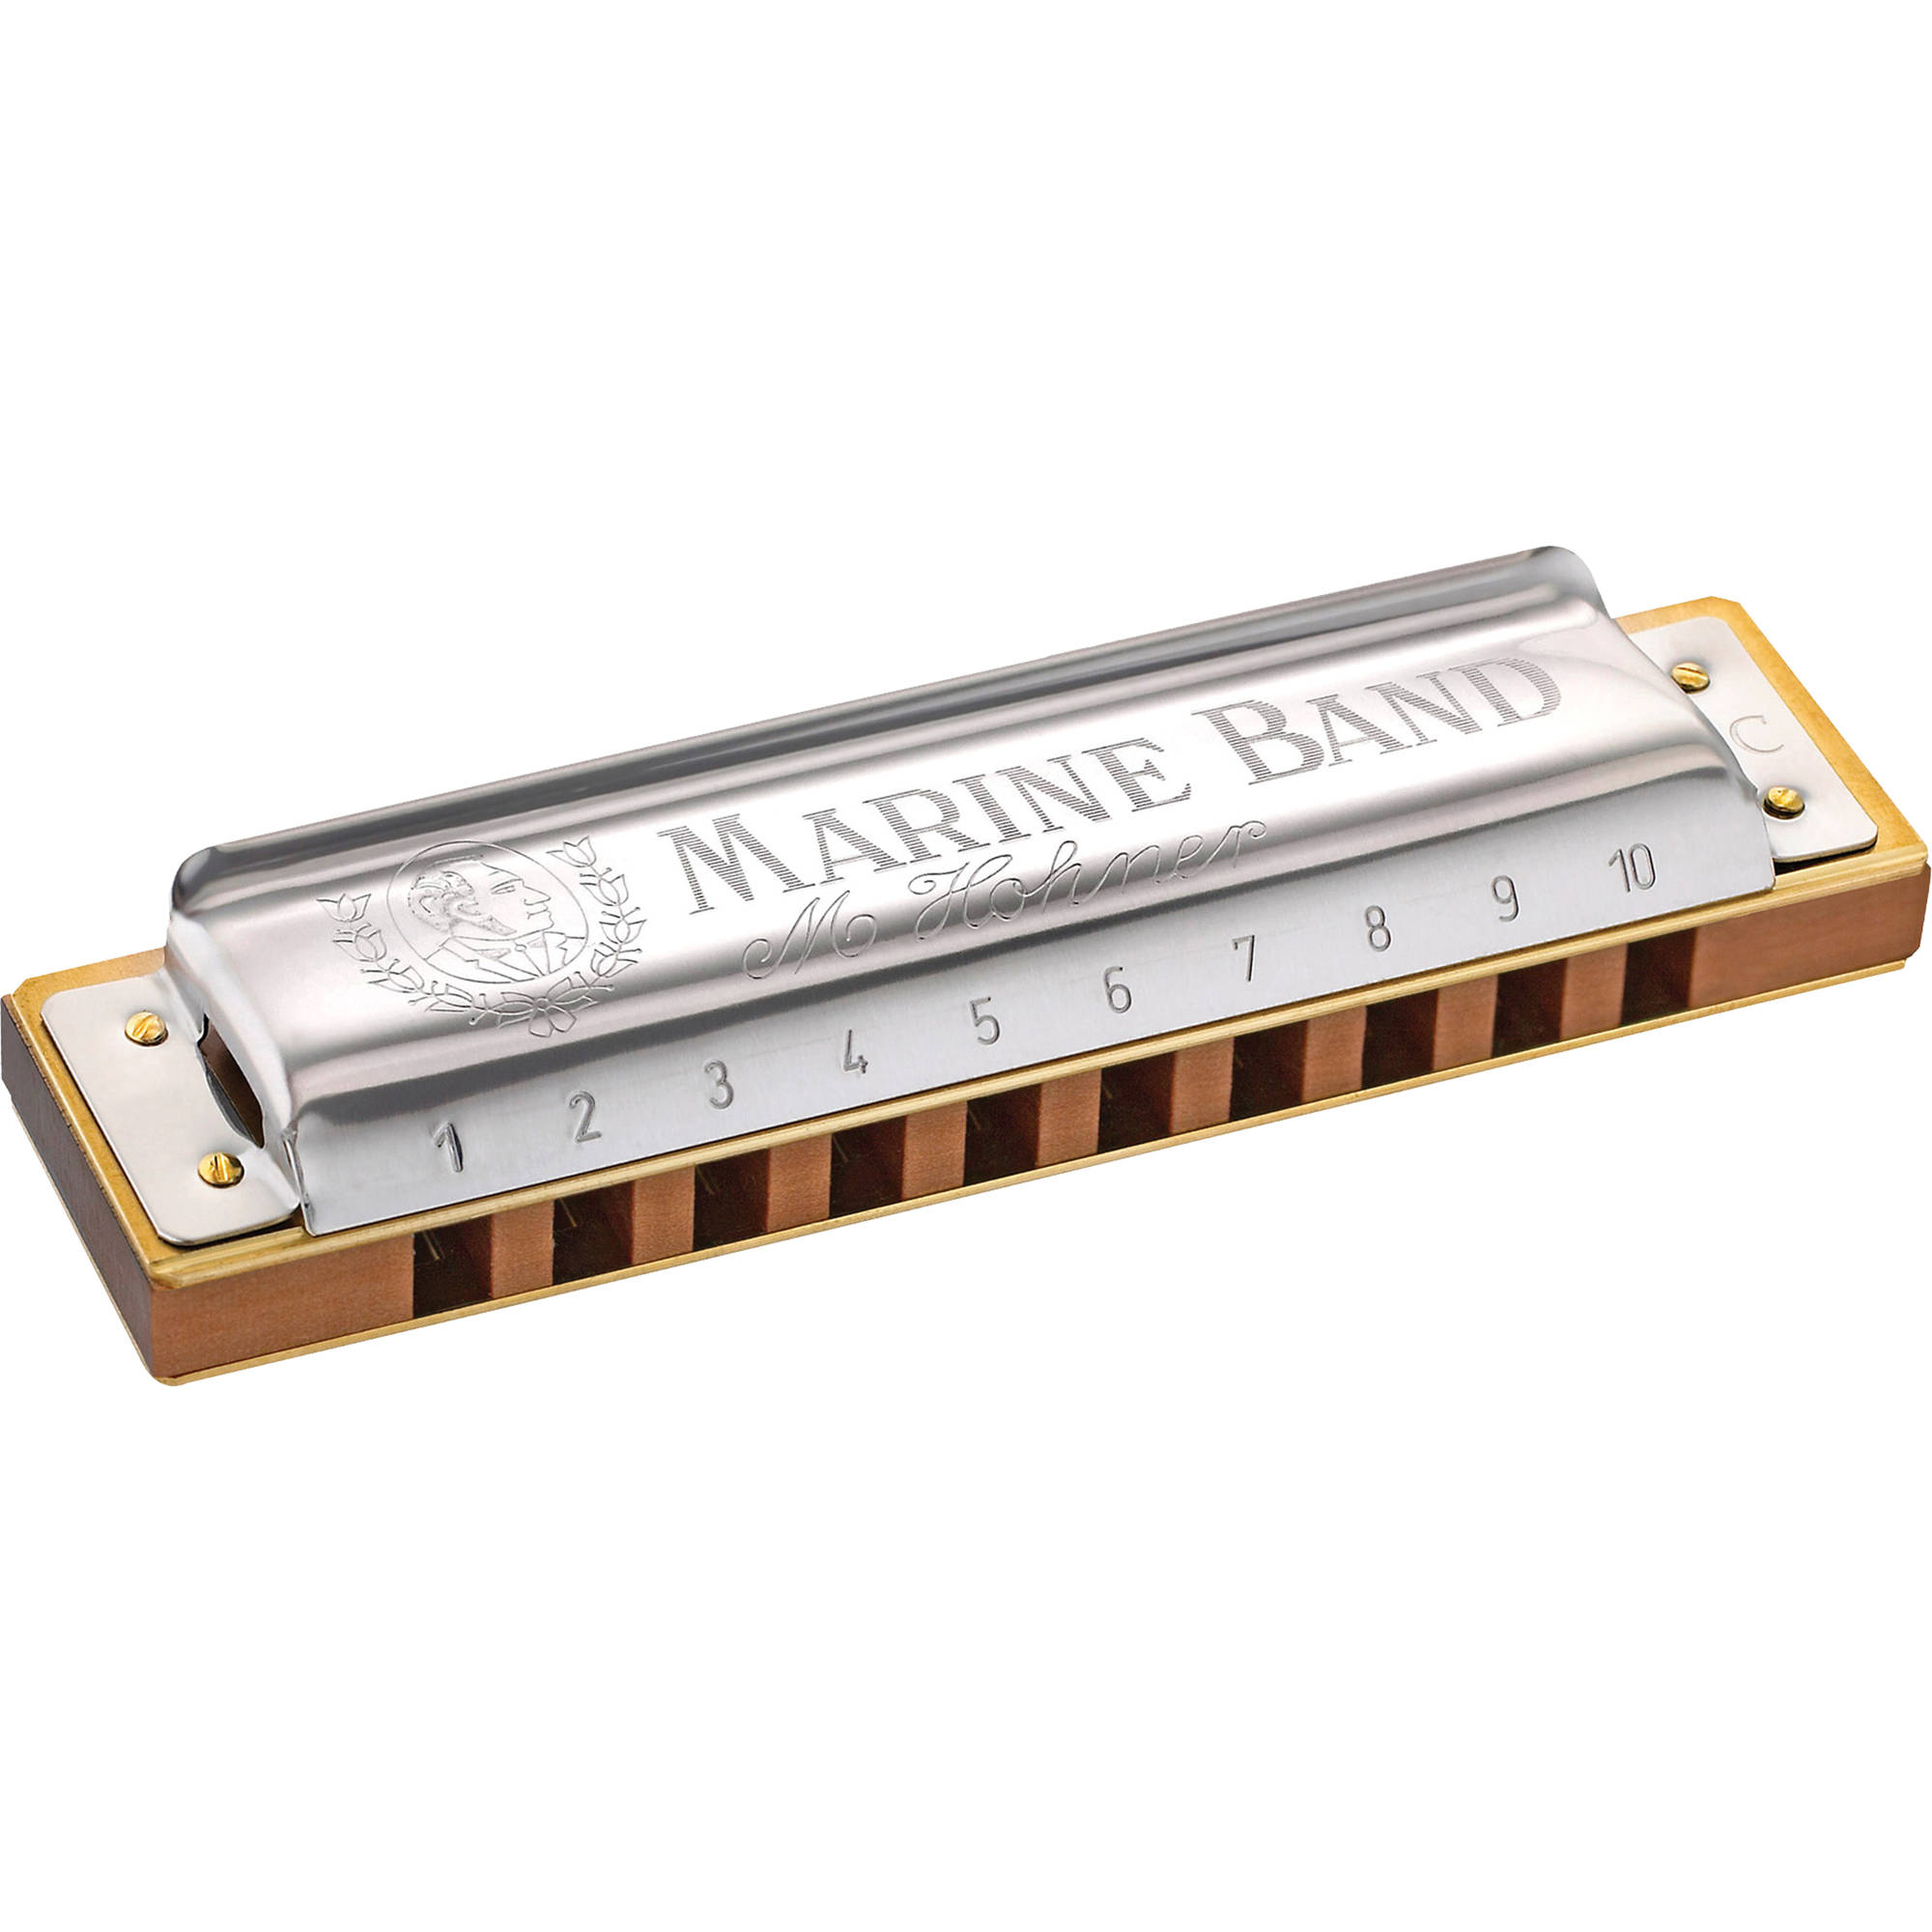 hohner hohner marine band harmonica with retail box 1896bx m g. Black Bedroom Furniture Sets. Home Design Ideas